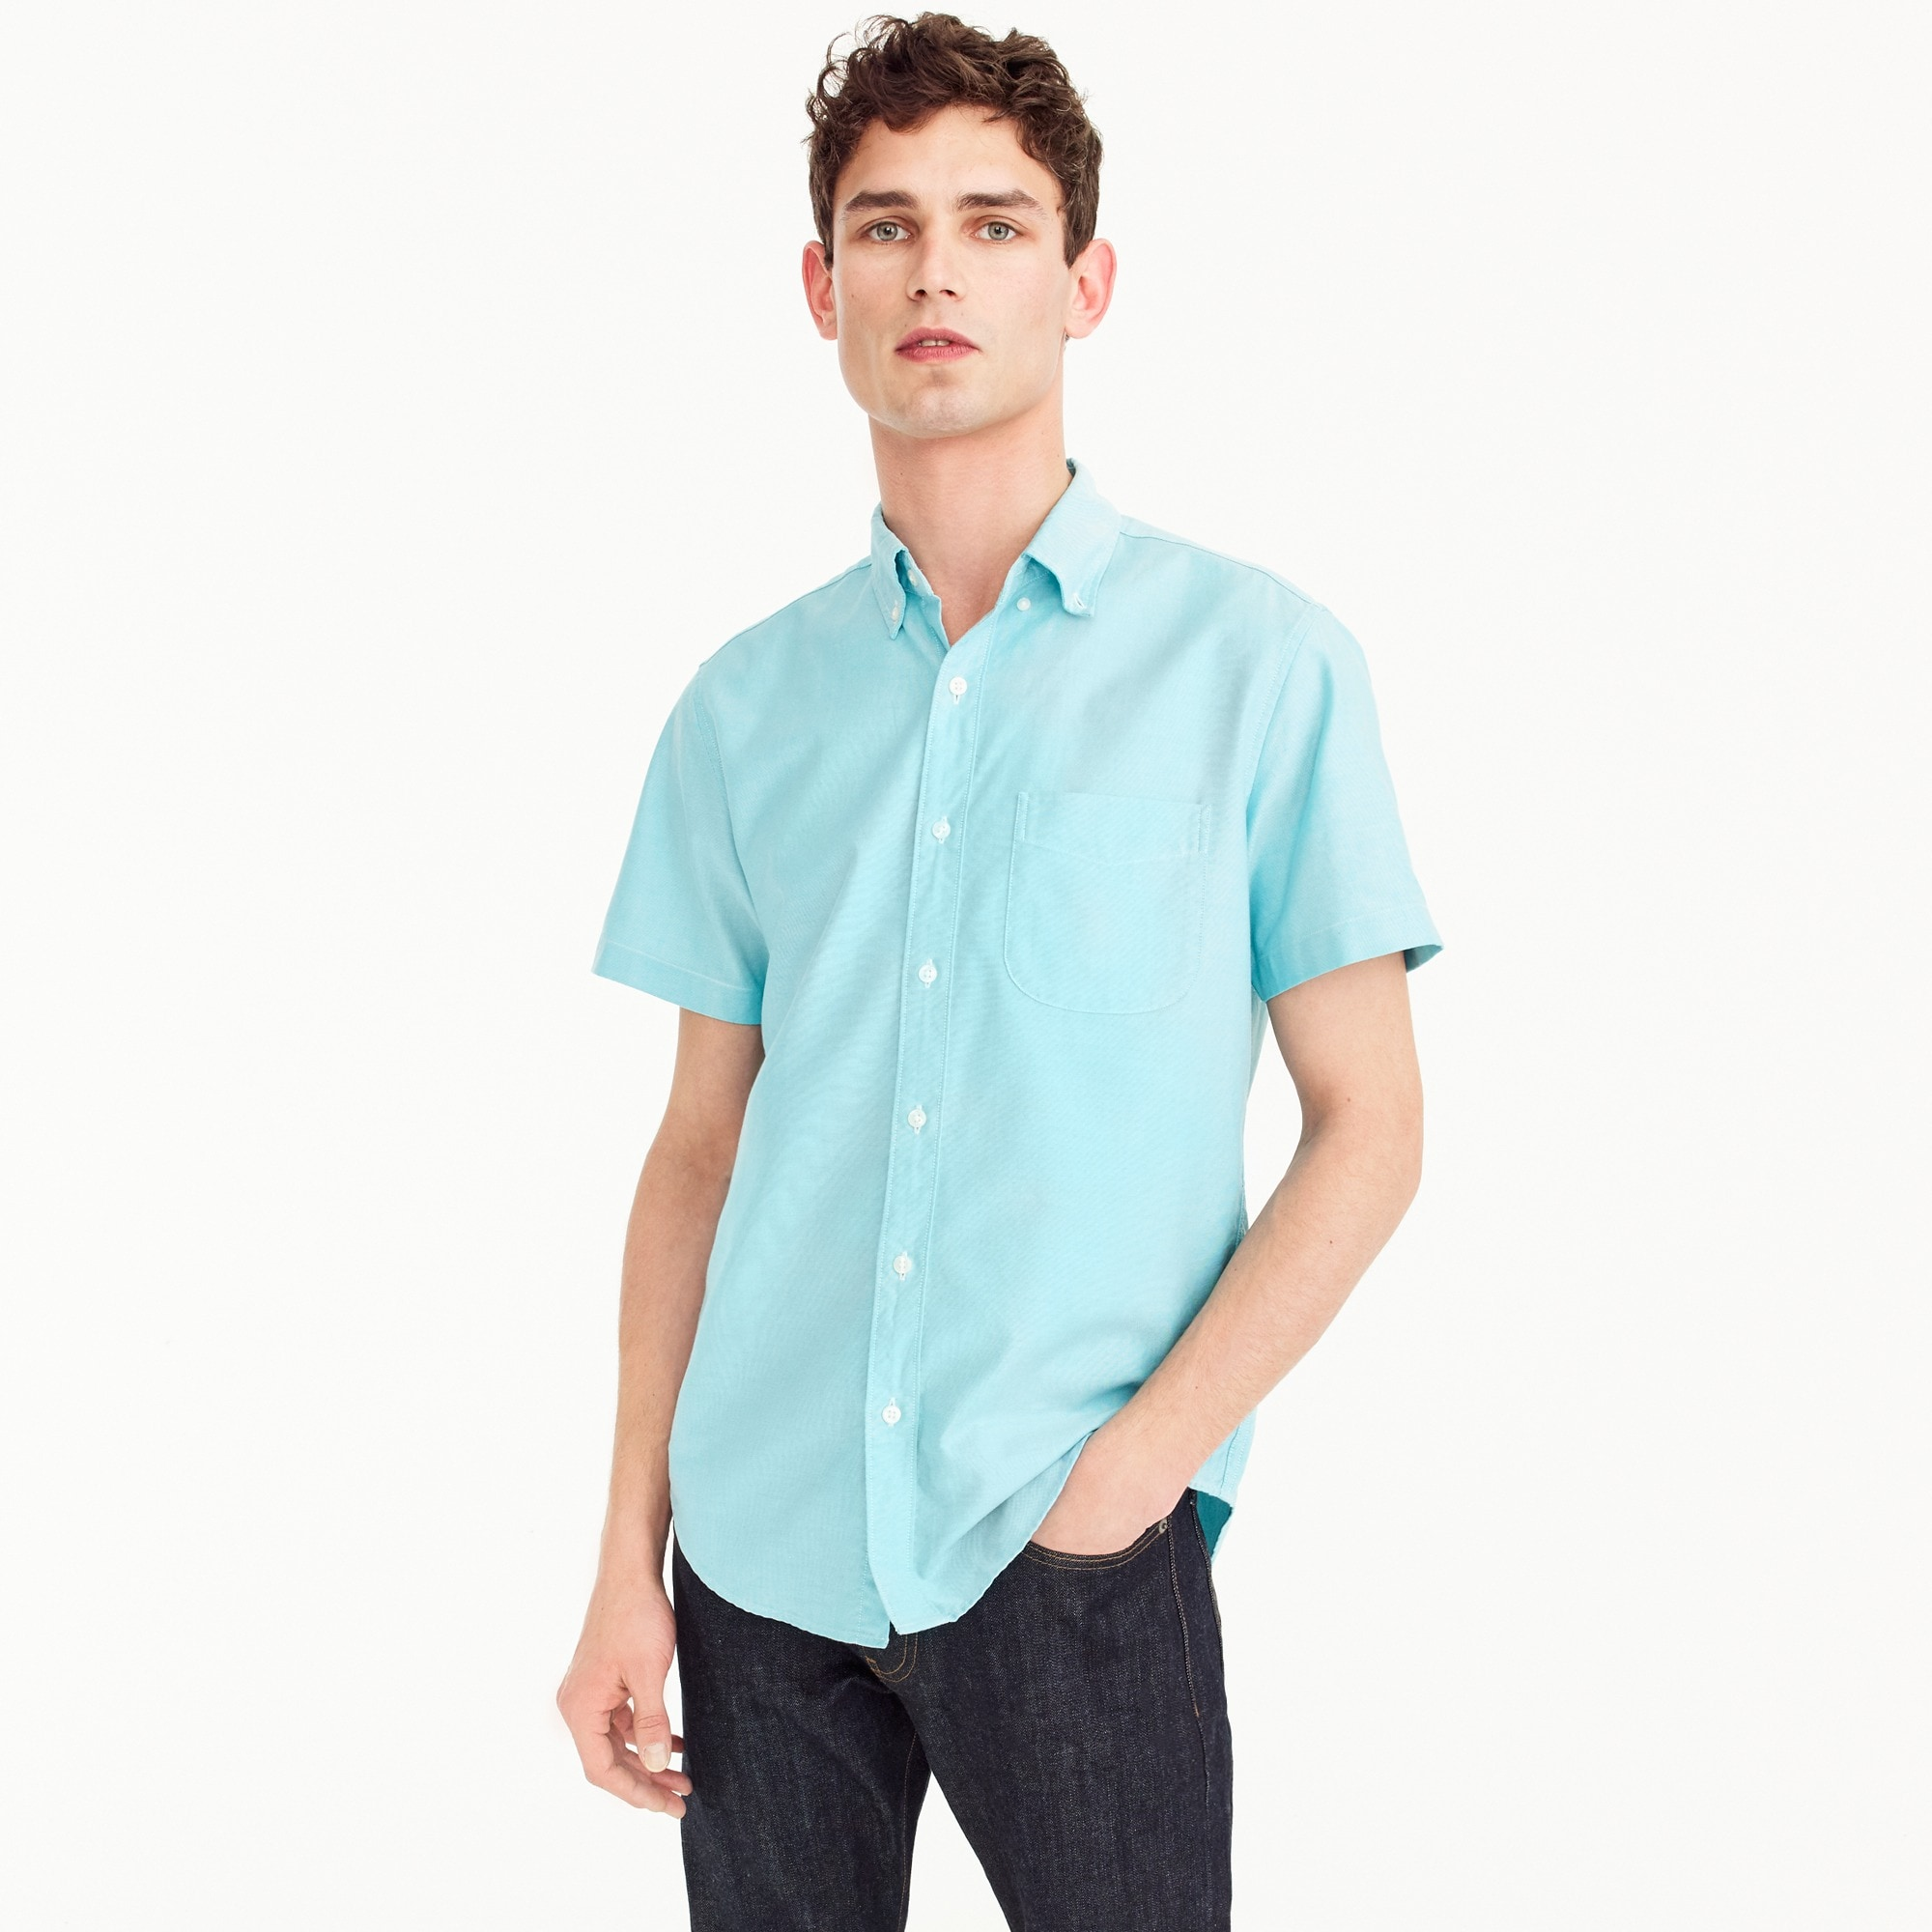 Short-sleeve stretch American Pima oxford shirt in turquoise men casual shirts c